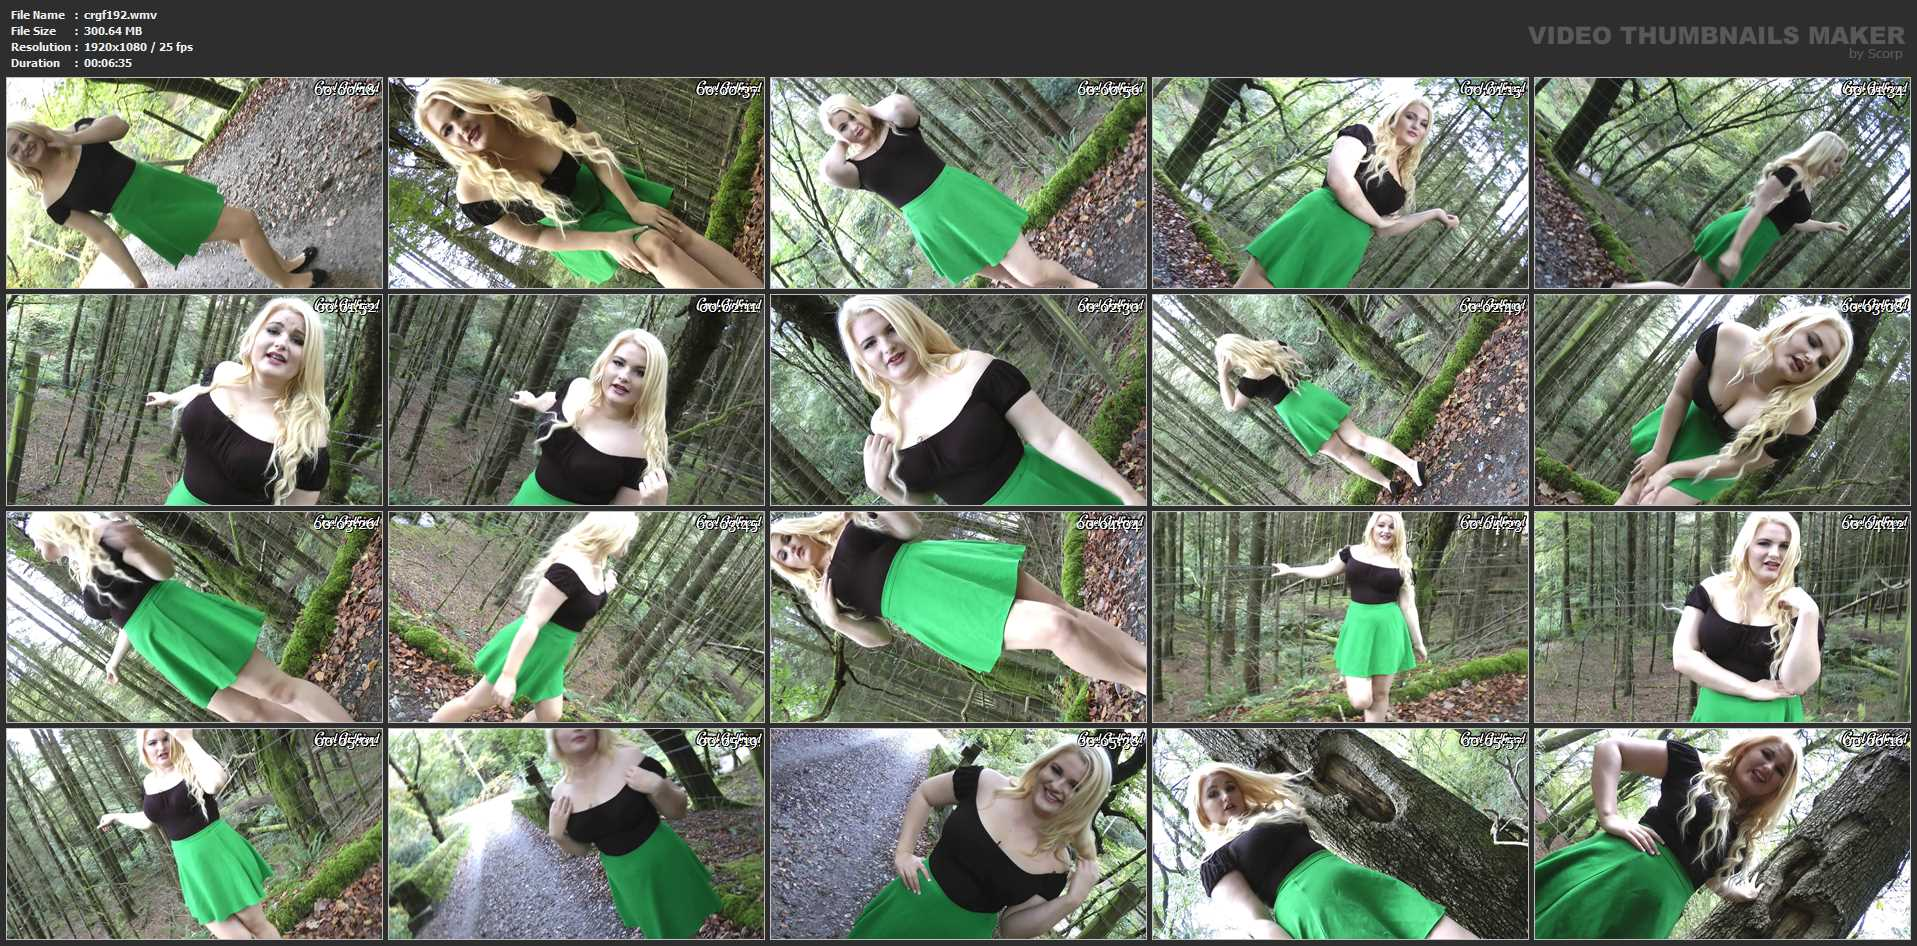 Princess Ashleigh In Scene: Sissy In The Woods - CRUELGF - FULL HD/1080p/WMV